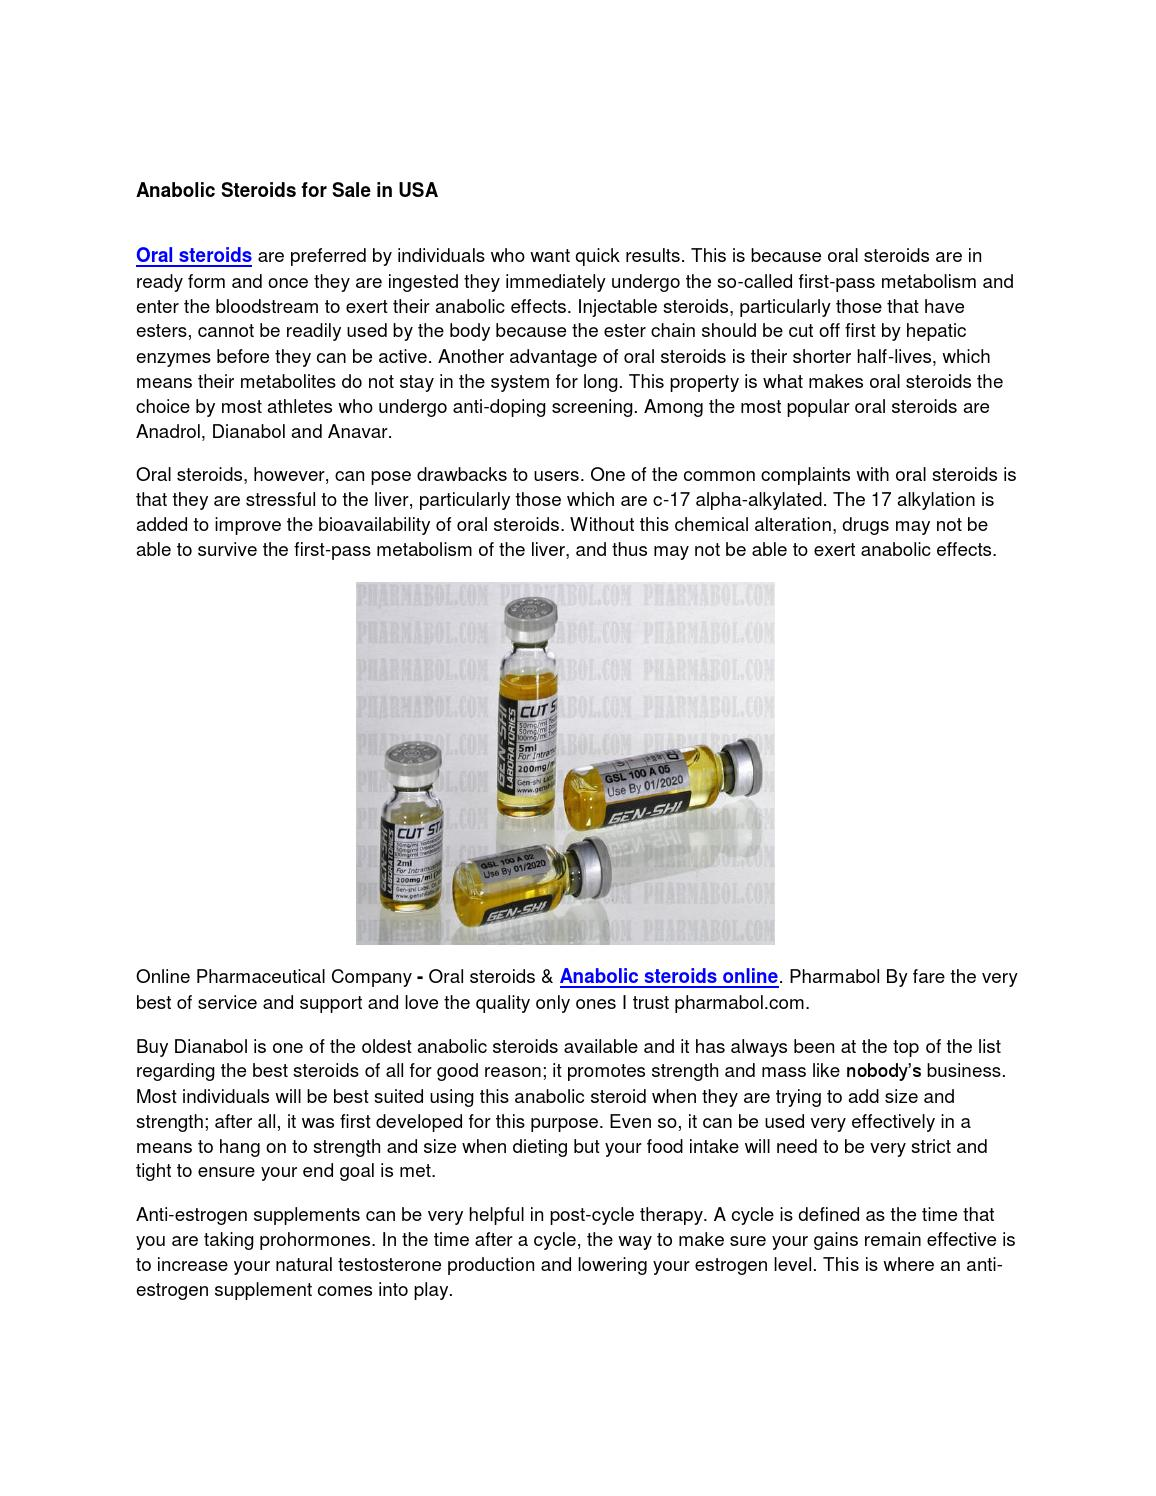 Best Prohormone 2020 Anabolic steroids for sale in usa by Anabolic bodybuilding   issuu